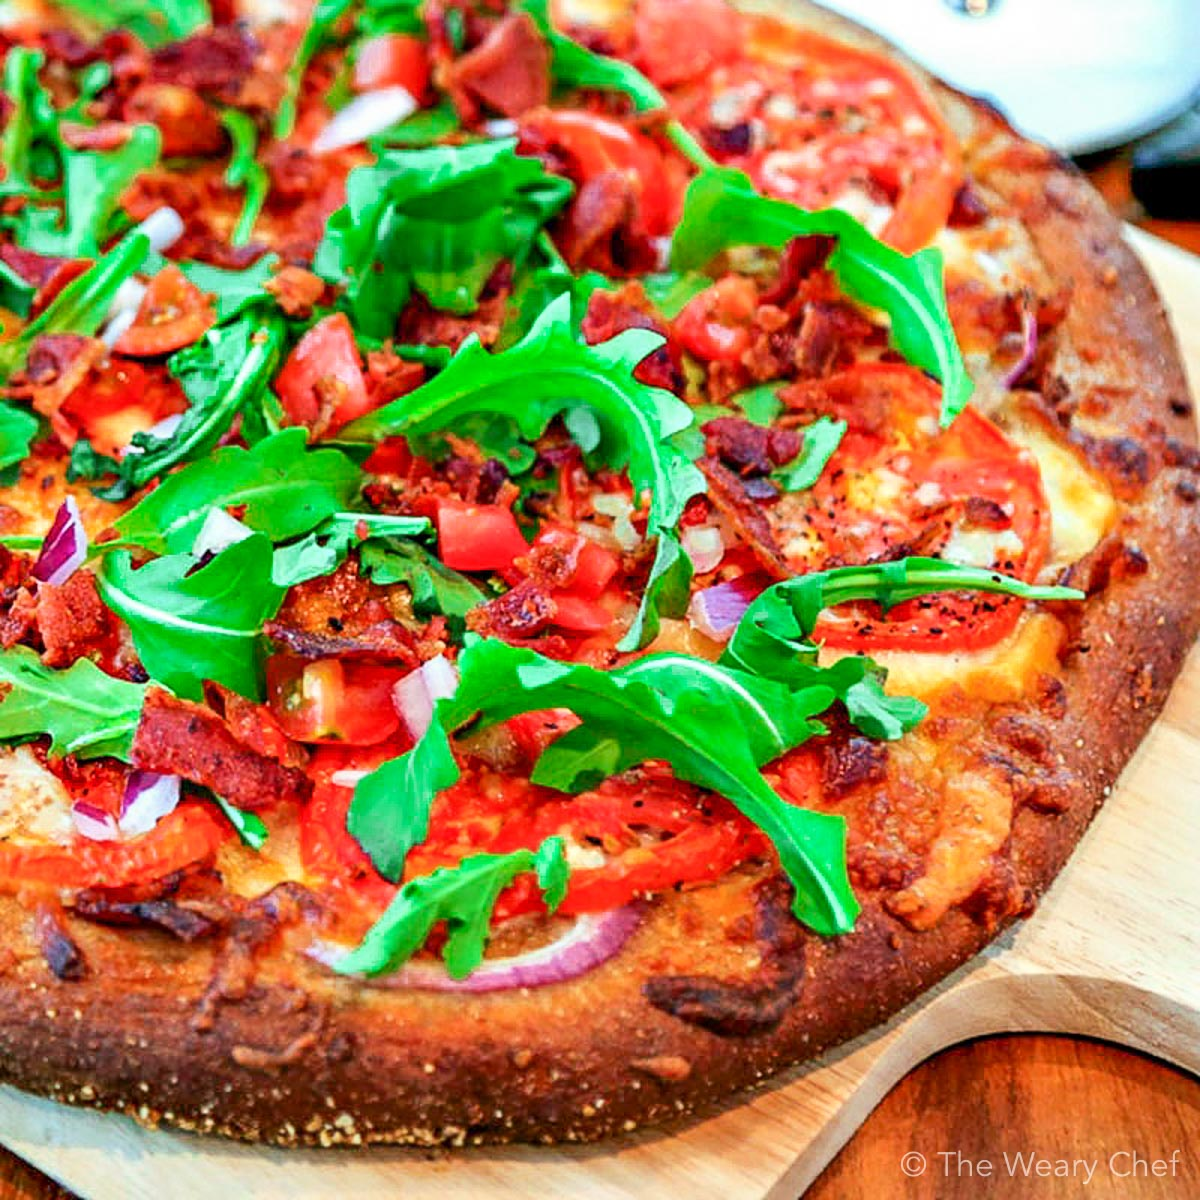 Bite into this BLT pizza loaded with a bacon, red onion, fresh tomatoes, arugula, cheeses, and a garlic-mayo sauce. It's your favorite sandwich turned into a chewy pizza! #blt #pizza #bacon